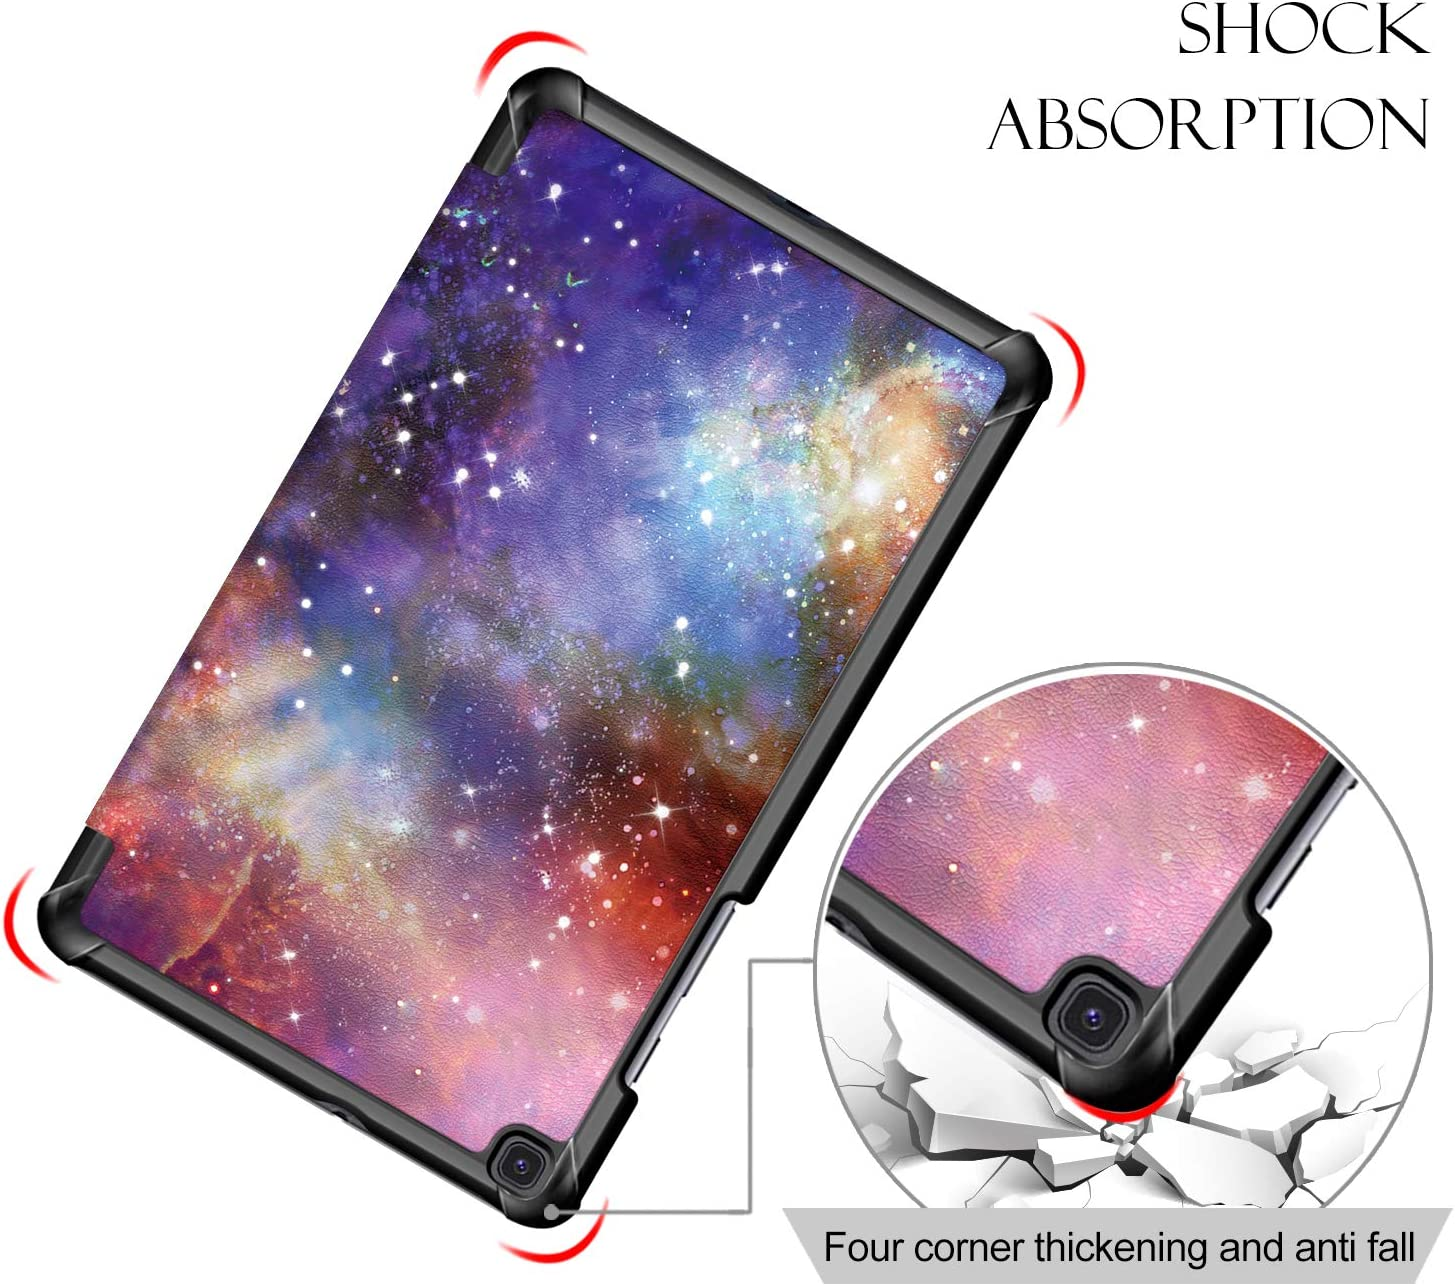 Model SM-T290 // T295 // T297 Ultra Slim PU Leather Lightweight Tri-Fold Stand Cover Case for Galaxy Tab A 8.0 2019 Tablet Galaxy Surom Folio Case for Samsung Galaxy Tab A 8.0 2019